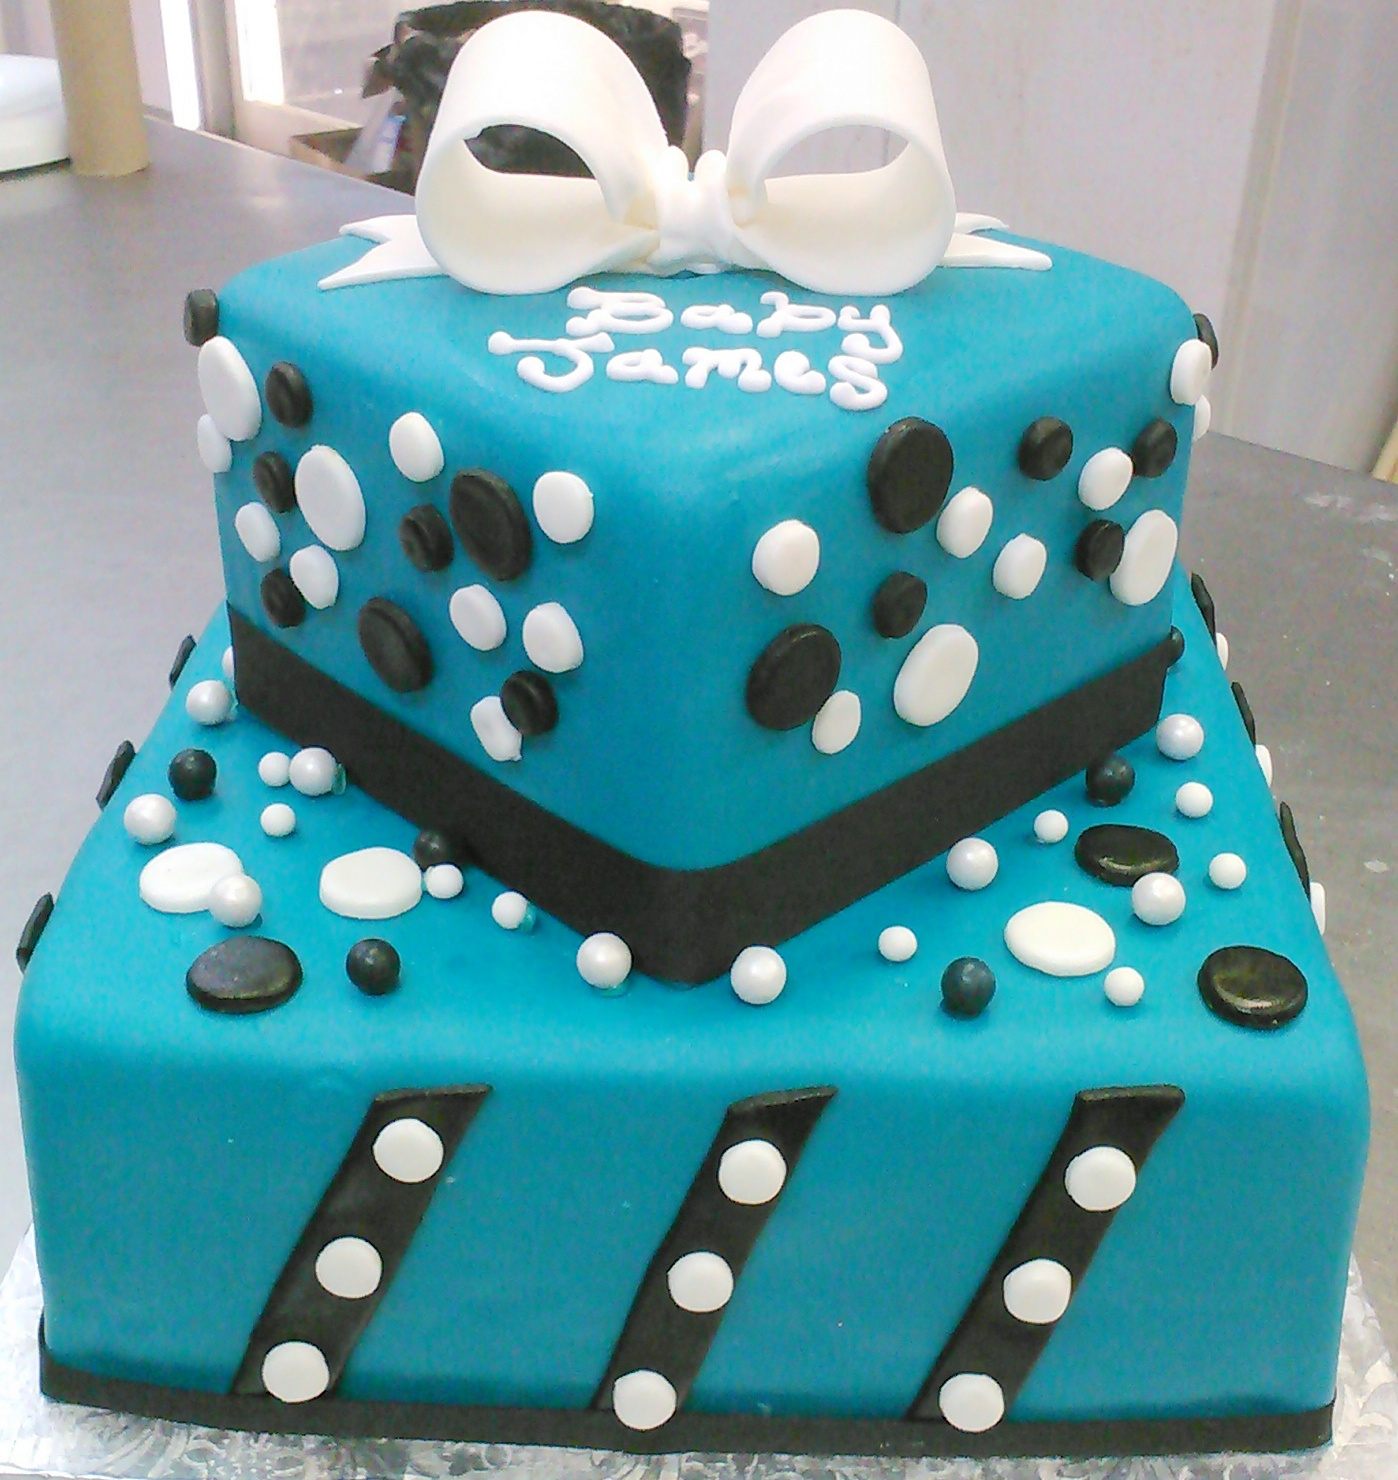 Teal Blue custom square boy's baby shower cake design with black and white stripes and polka dots and edible bow topper.jpg